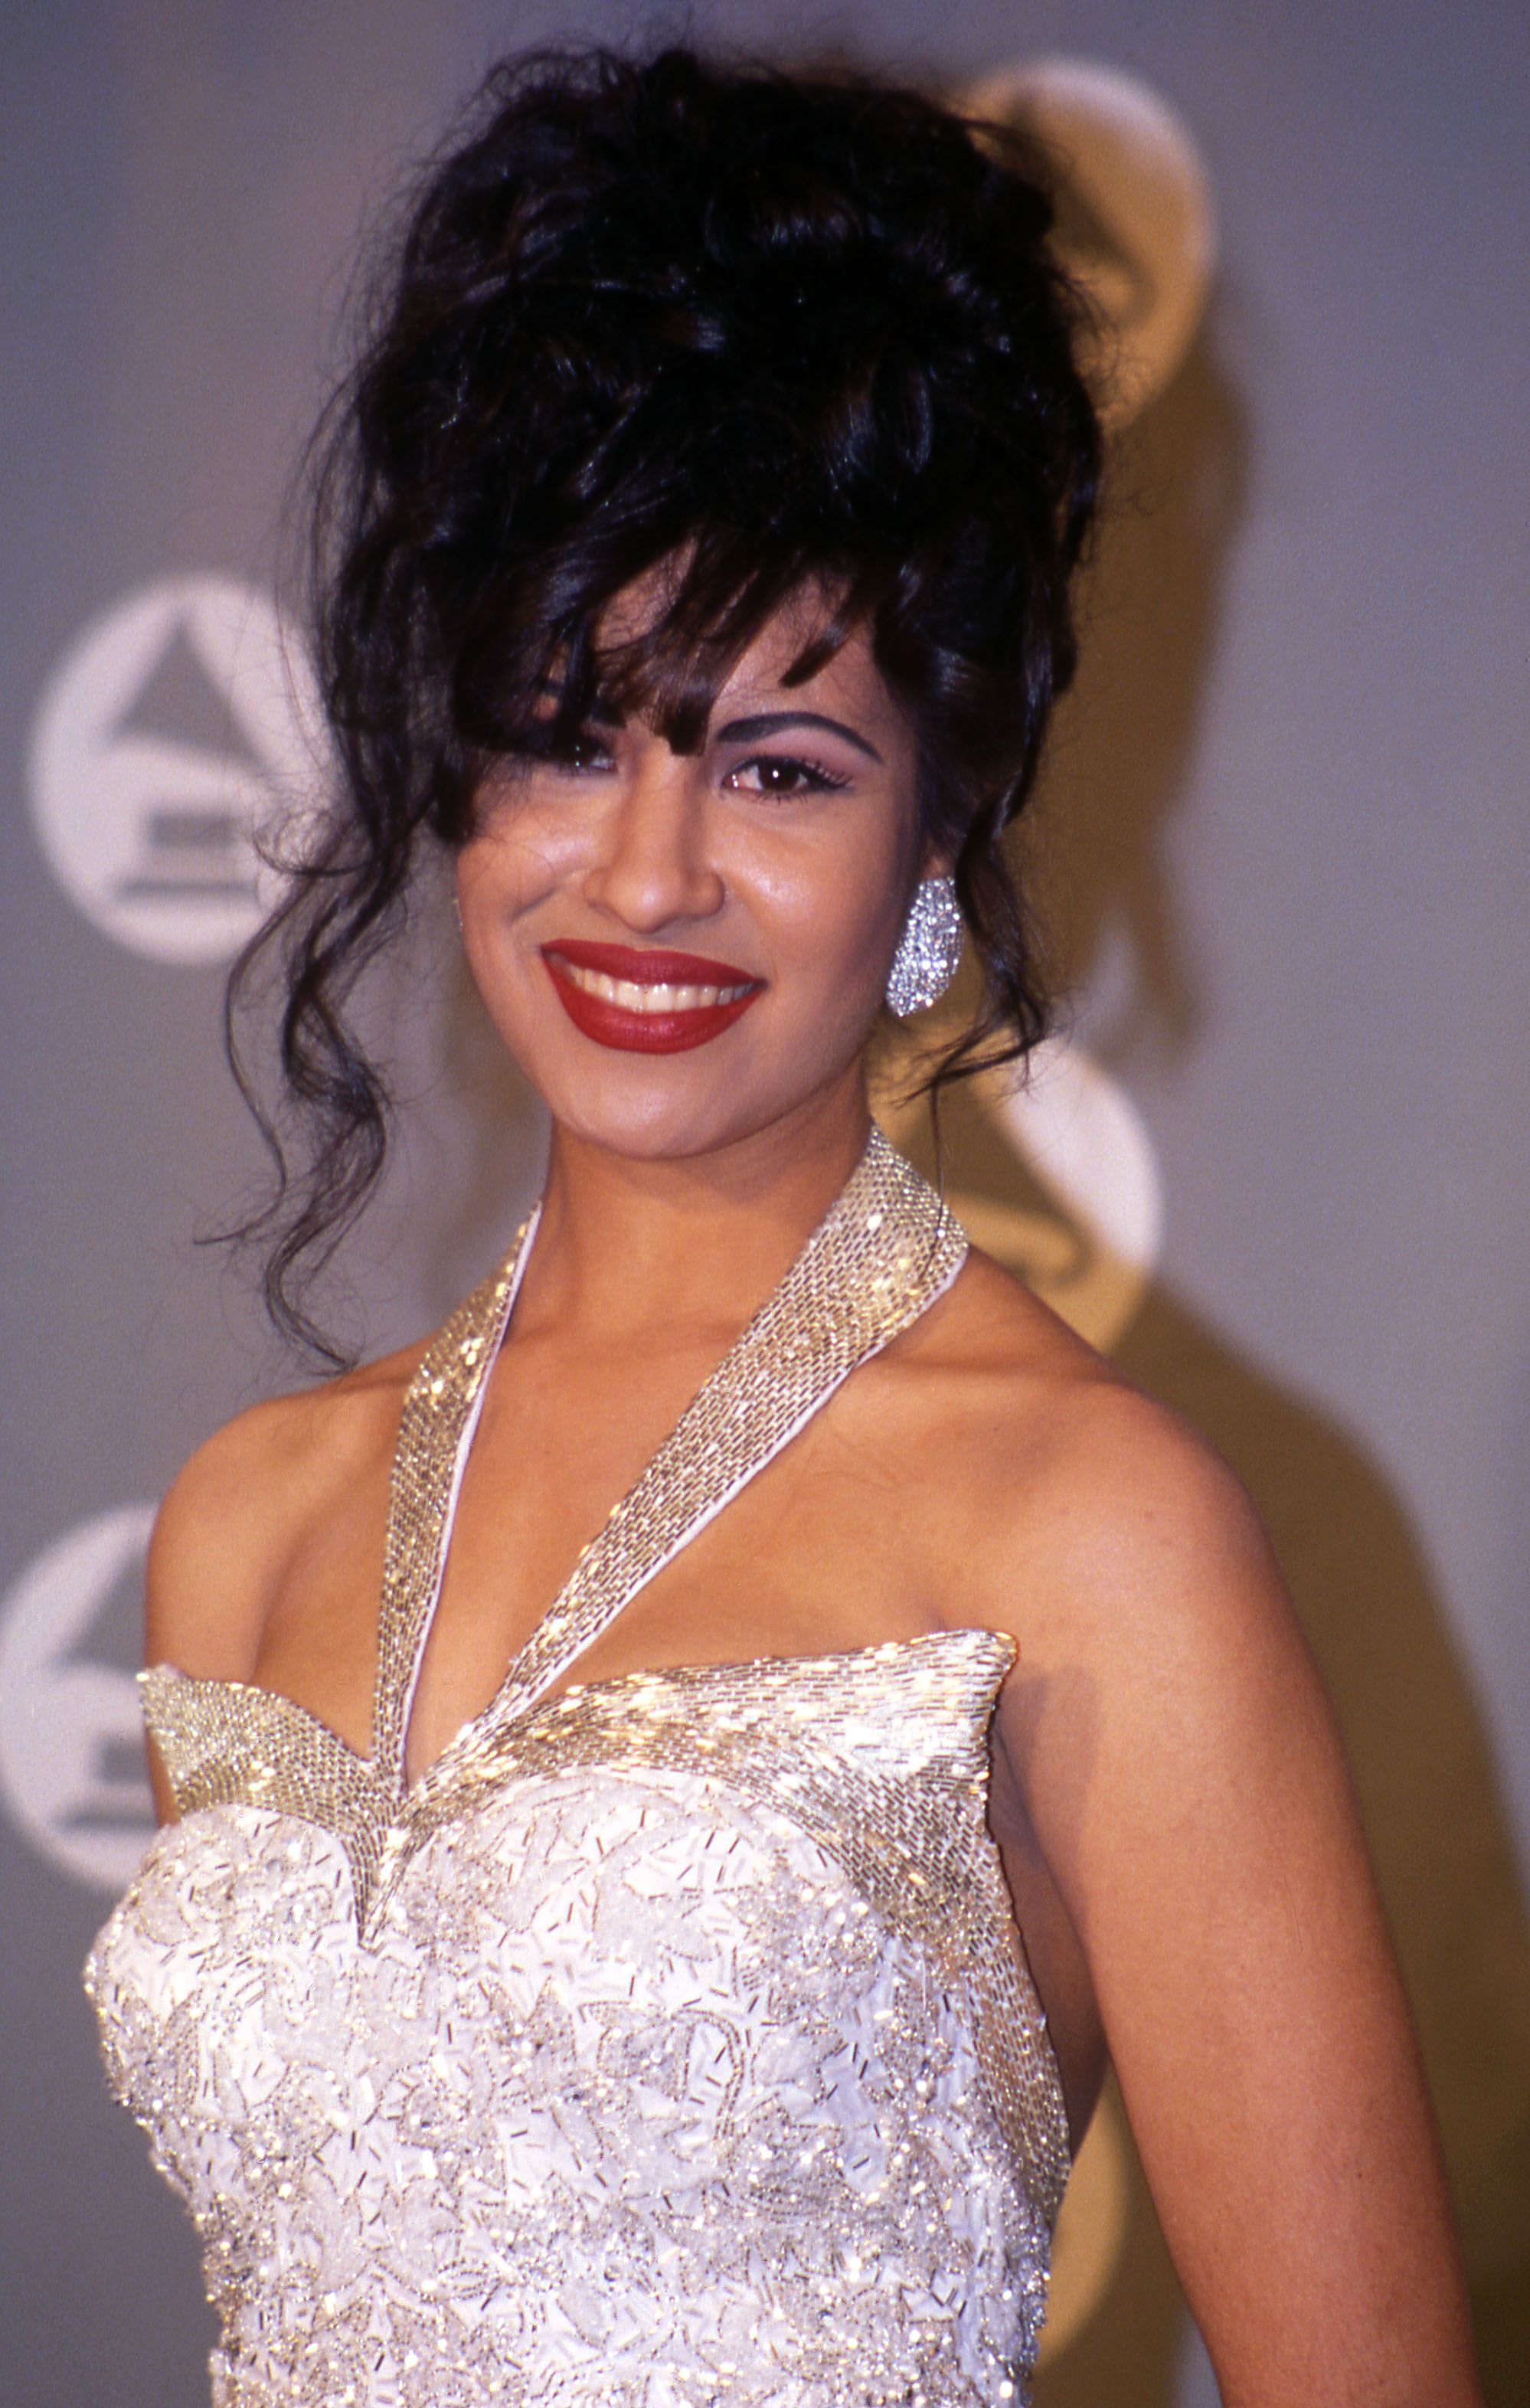 Selena Quintanilla's Family Developing Makeup Line in